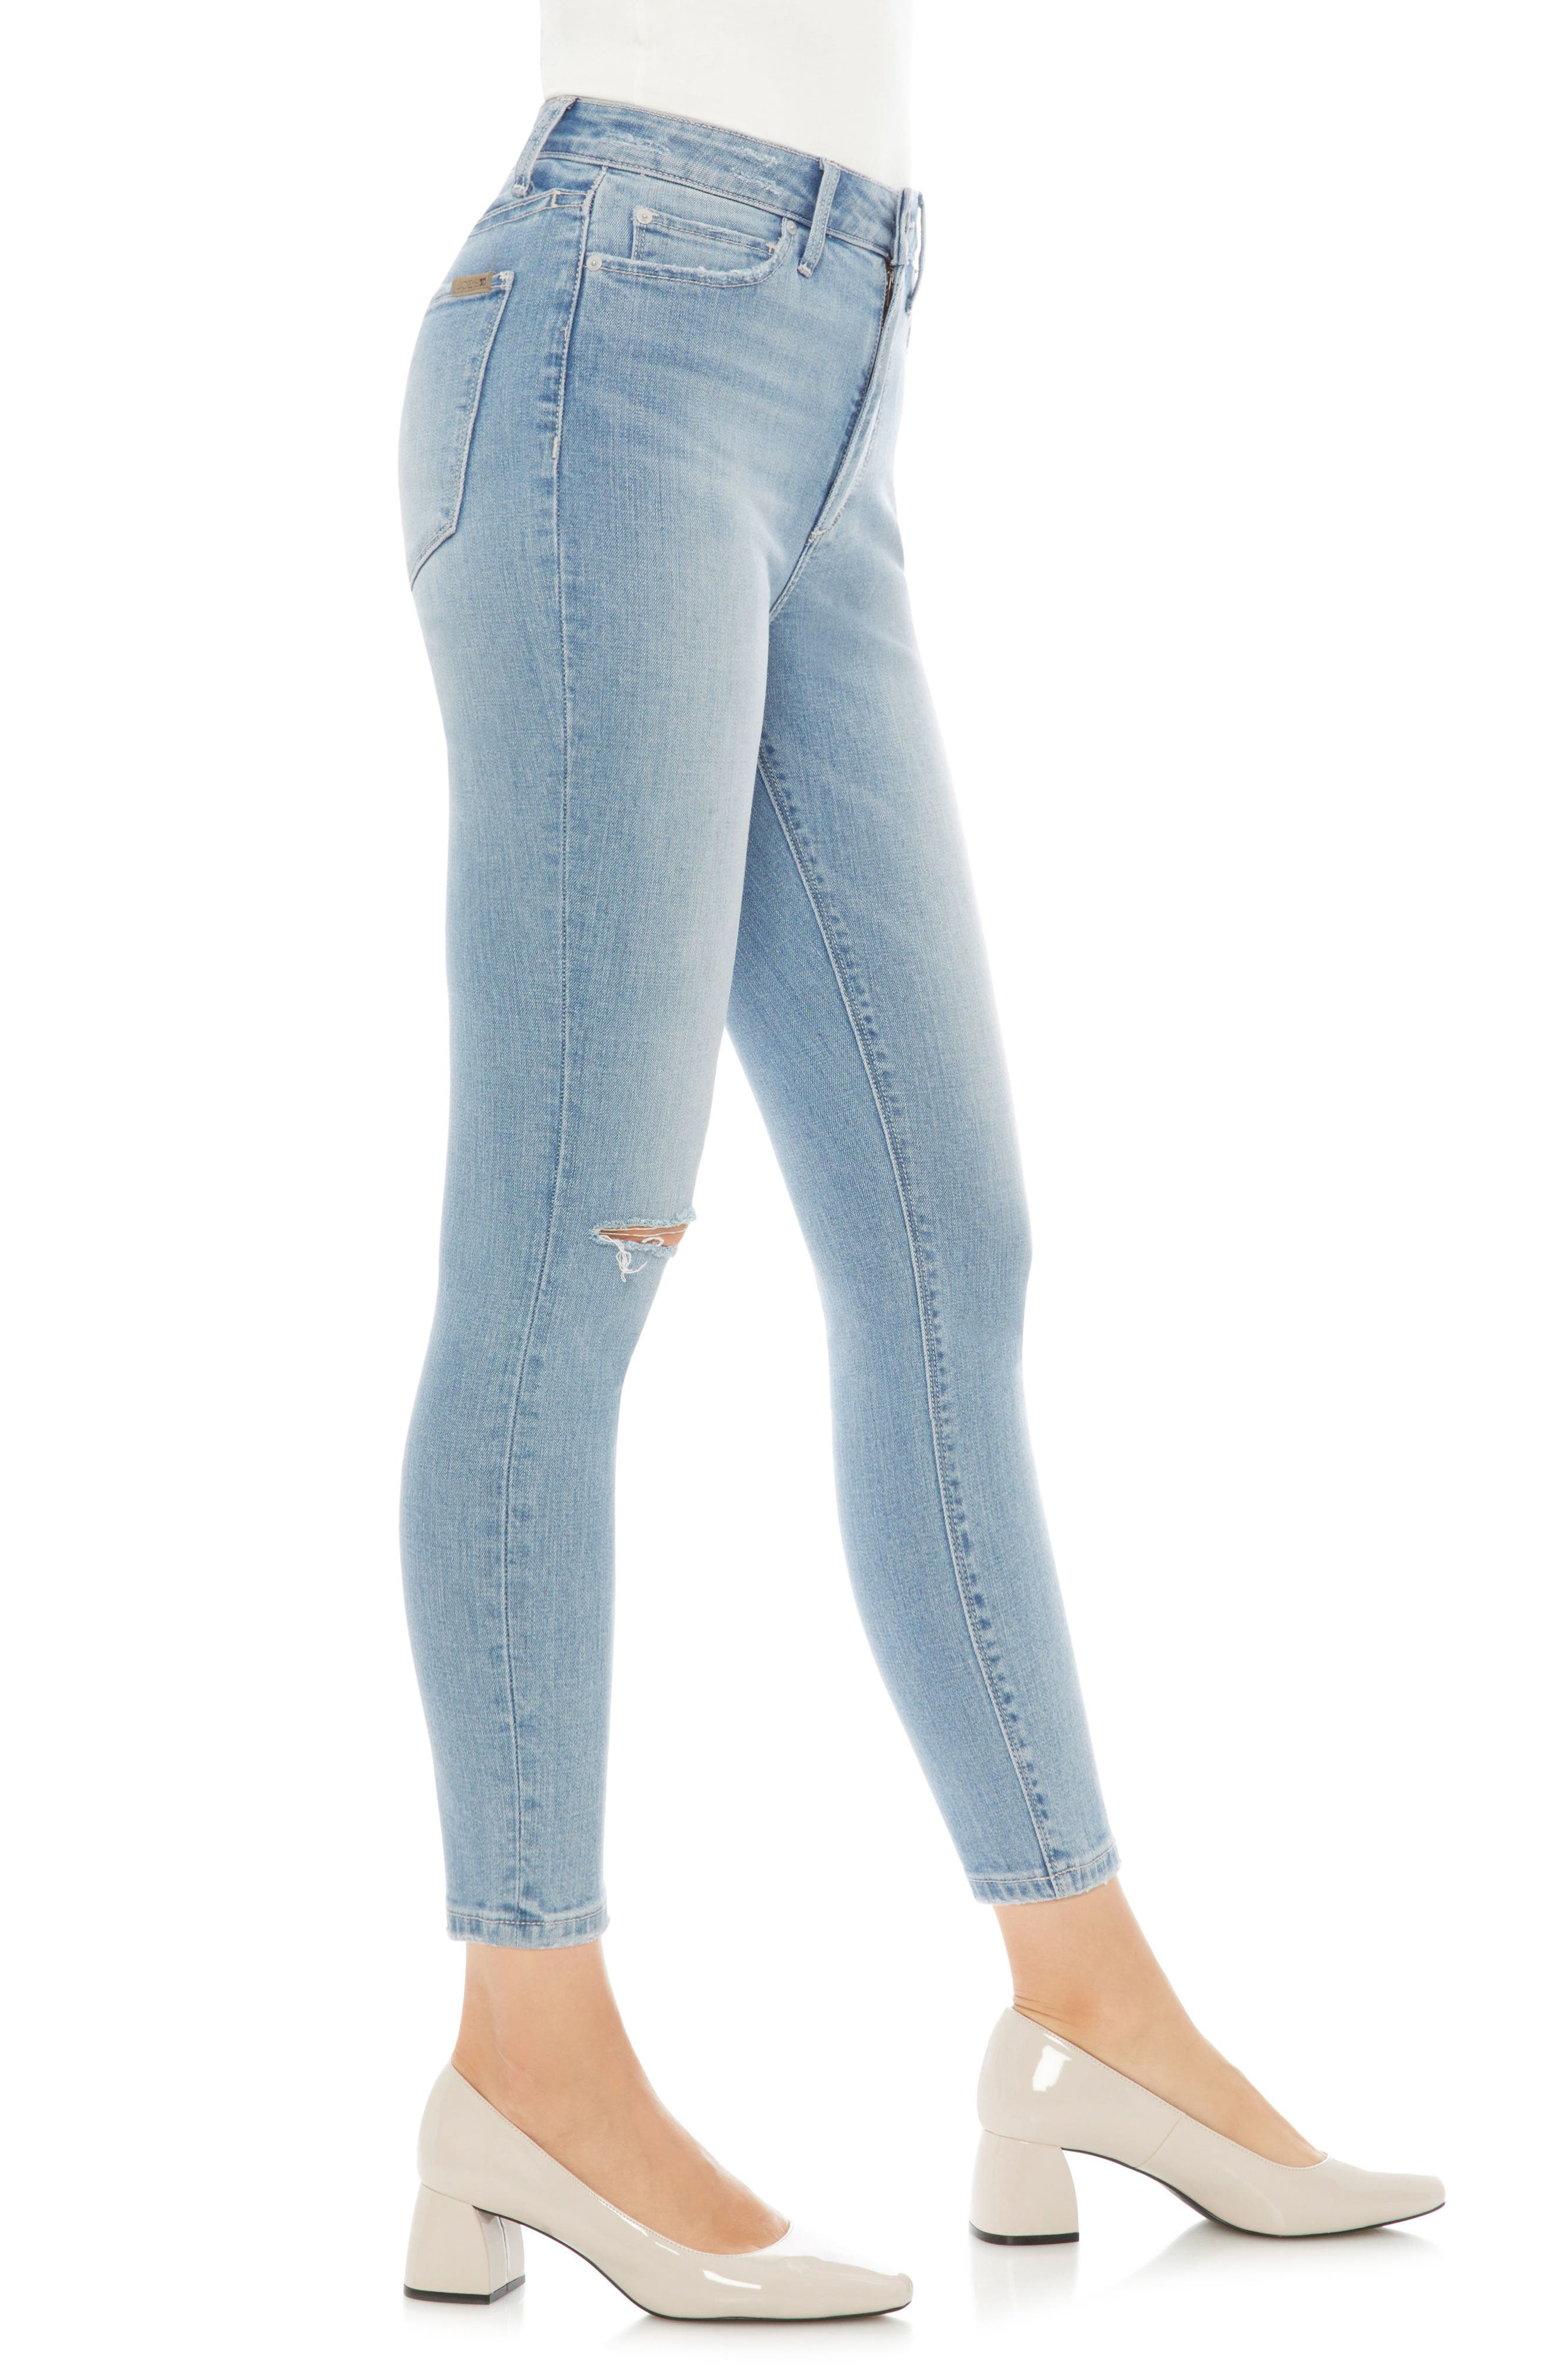 Charlie Ripped High Waist Crop Jeans,                             Alternate thumbnail 3, color,                             420